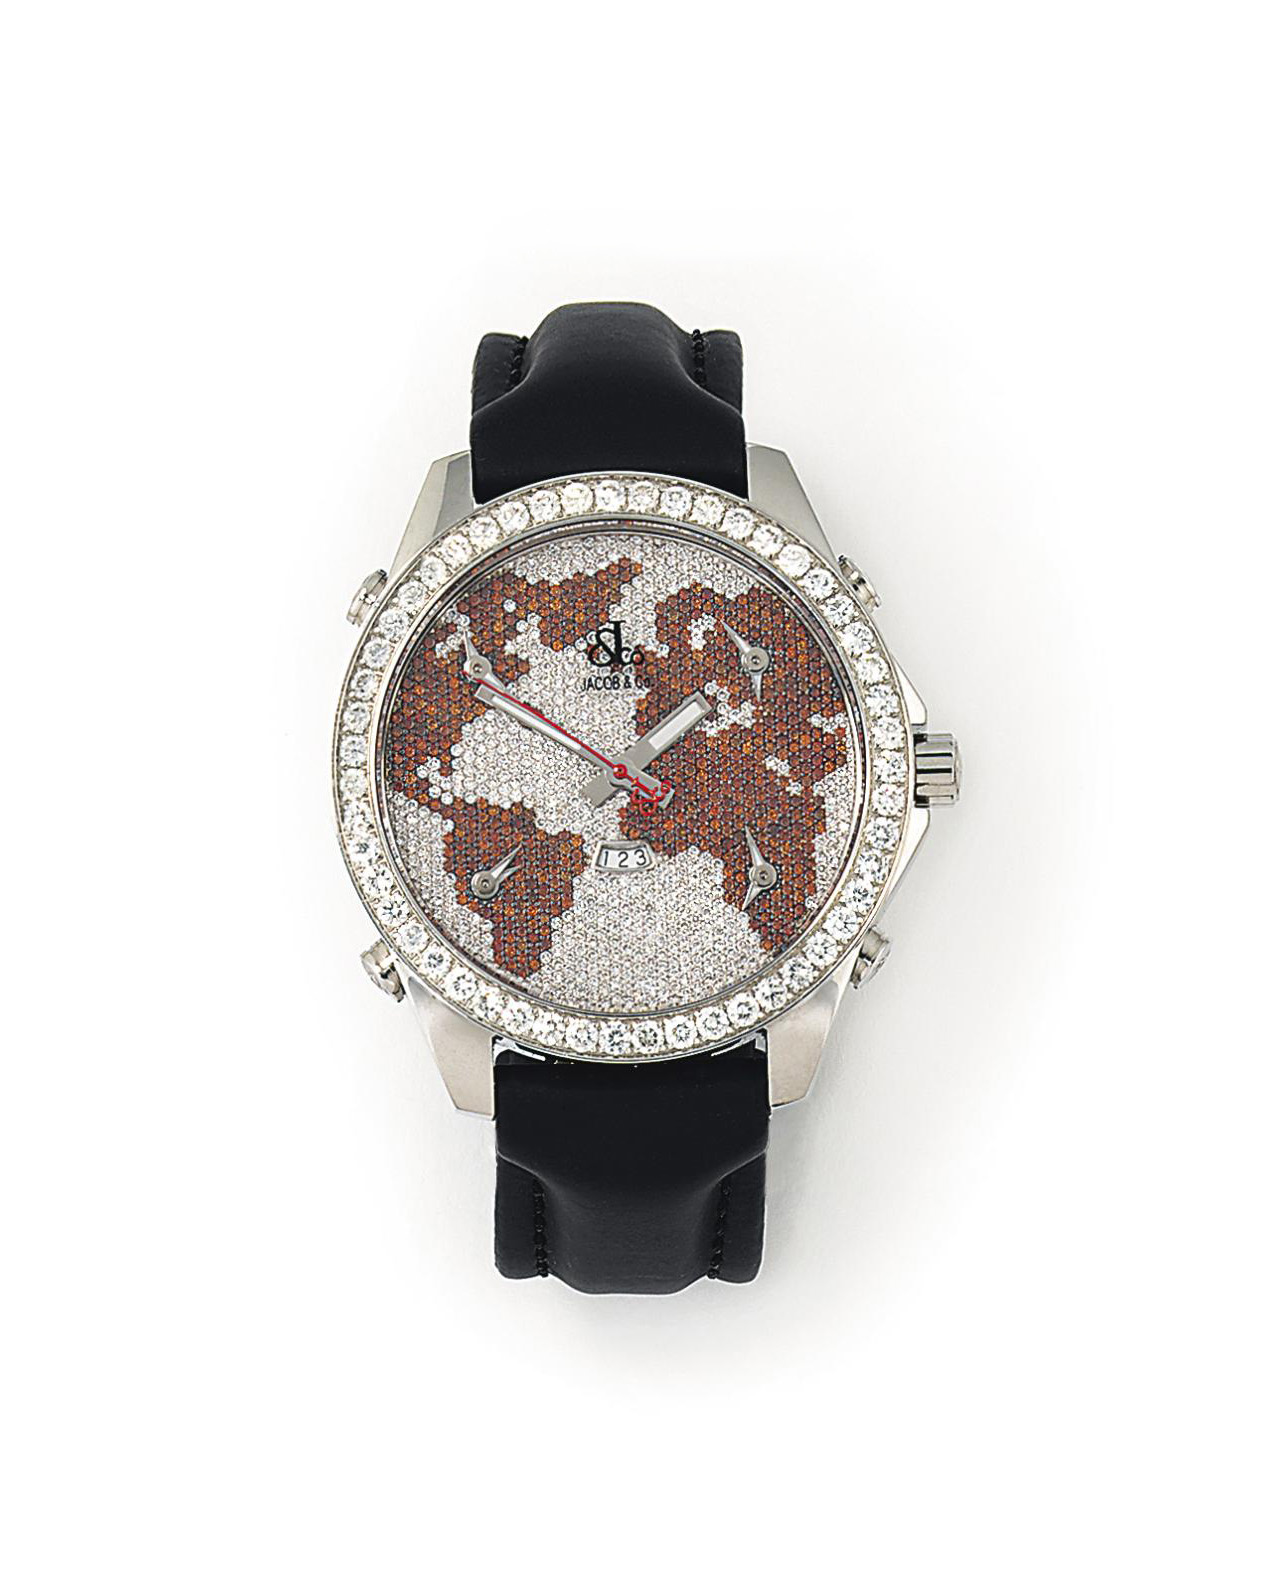 A DIAMOND AND TREATED DIAMOND-SET STAINLESS STEEL FIVE TIME ZONE QUARTZ WRISTWATCH, BY JACOB & CO.